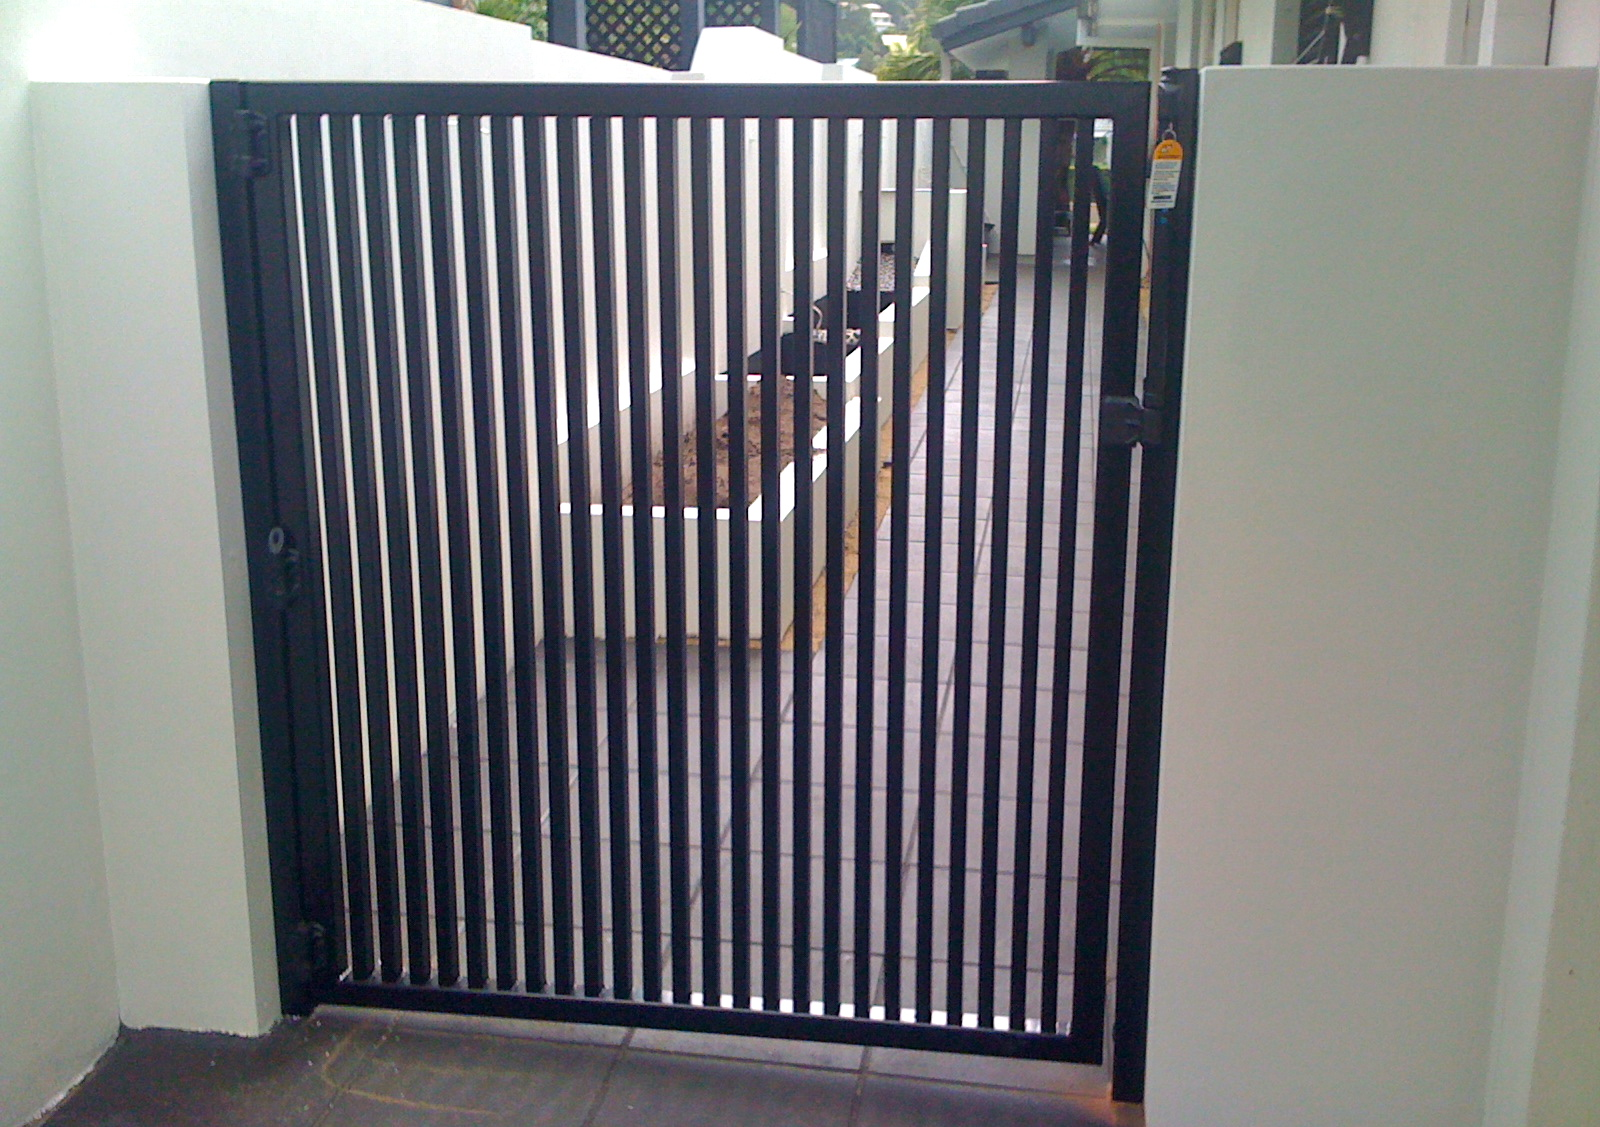 Vertical bar pedestrian gate